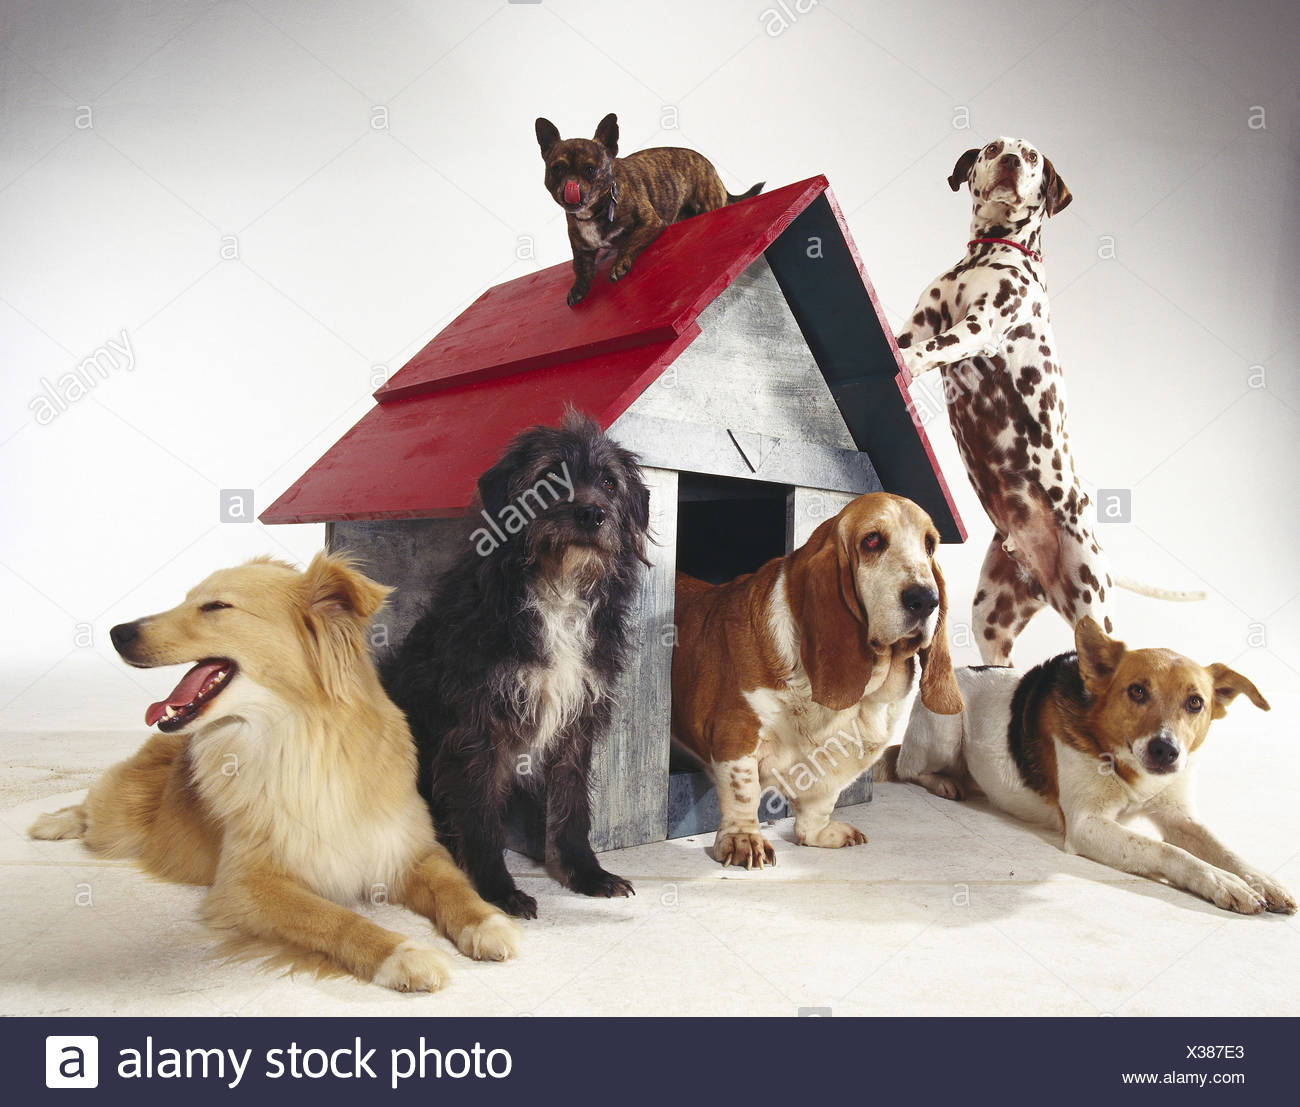 Dogs, different, kennel mammals, doggy, Canidae, pets, dogs, six, differently, pedigree dogs, hybrids, hybrid dogs, studio - Stock Image